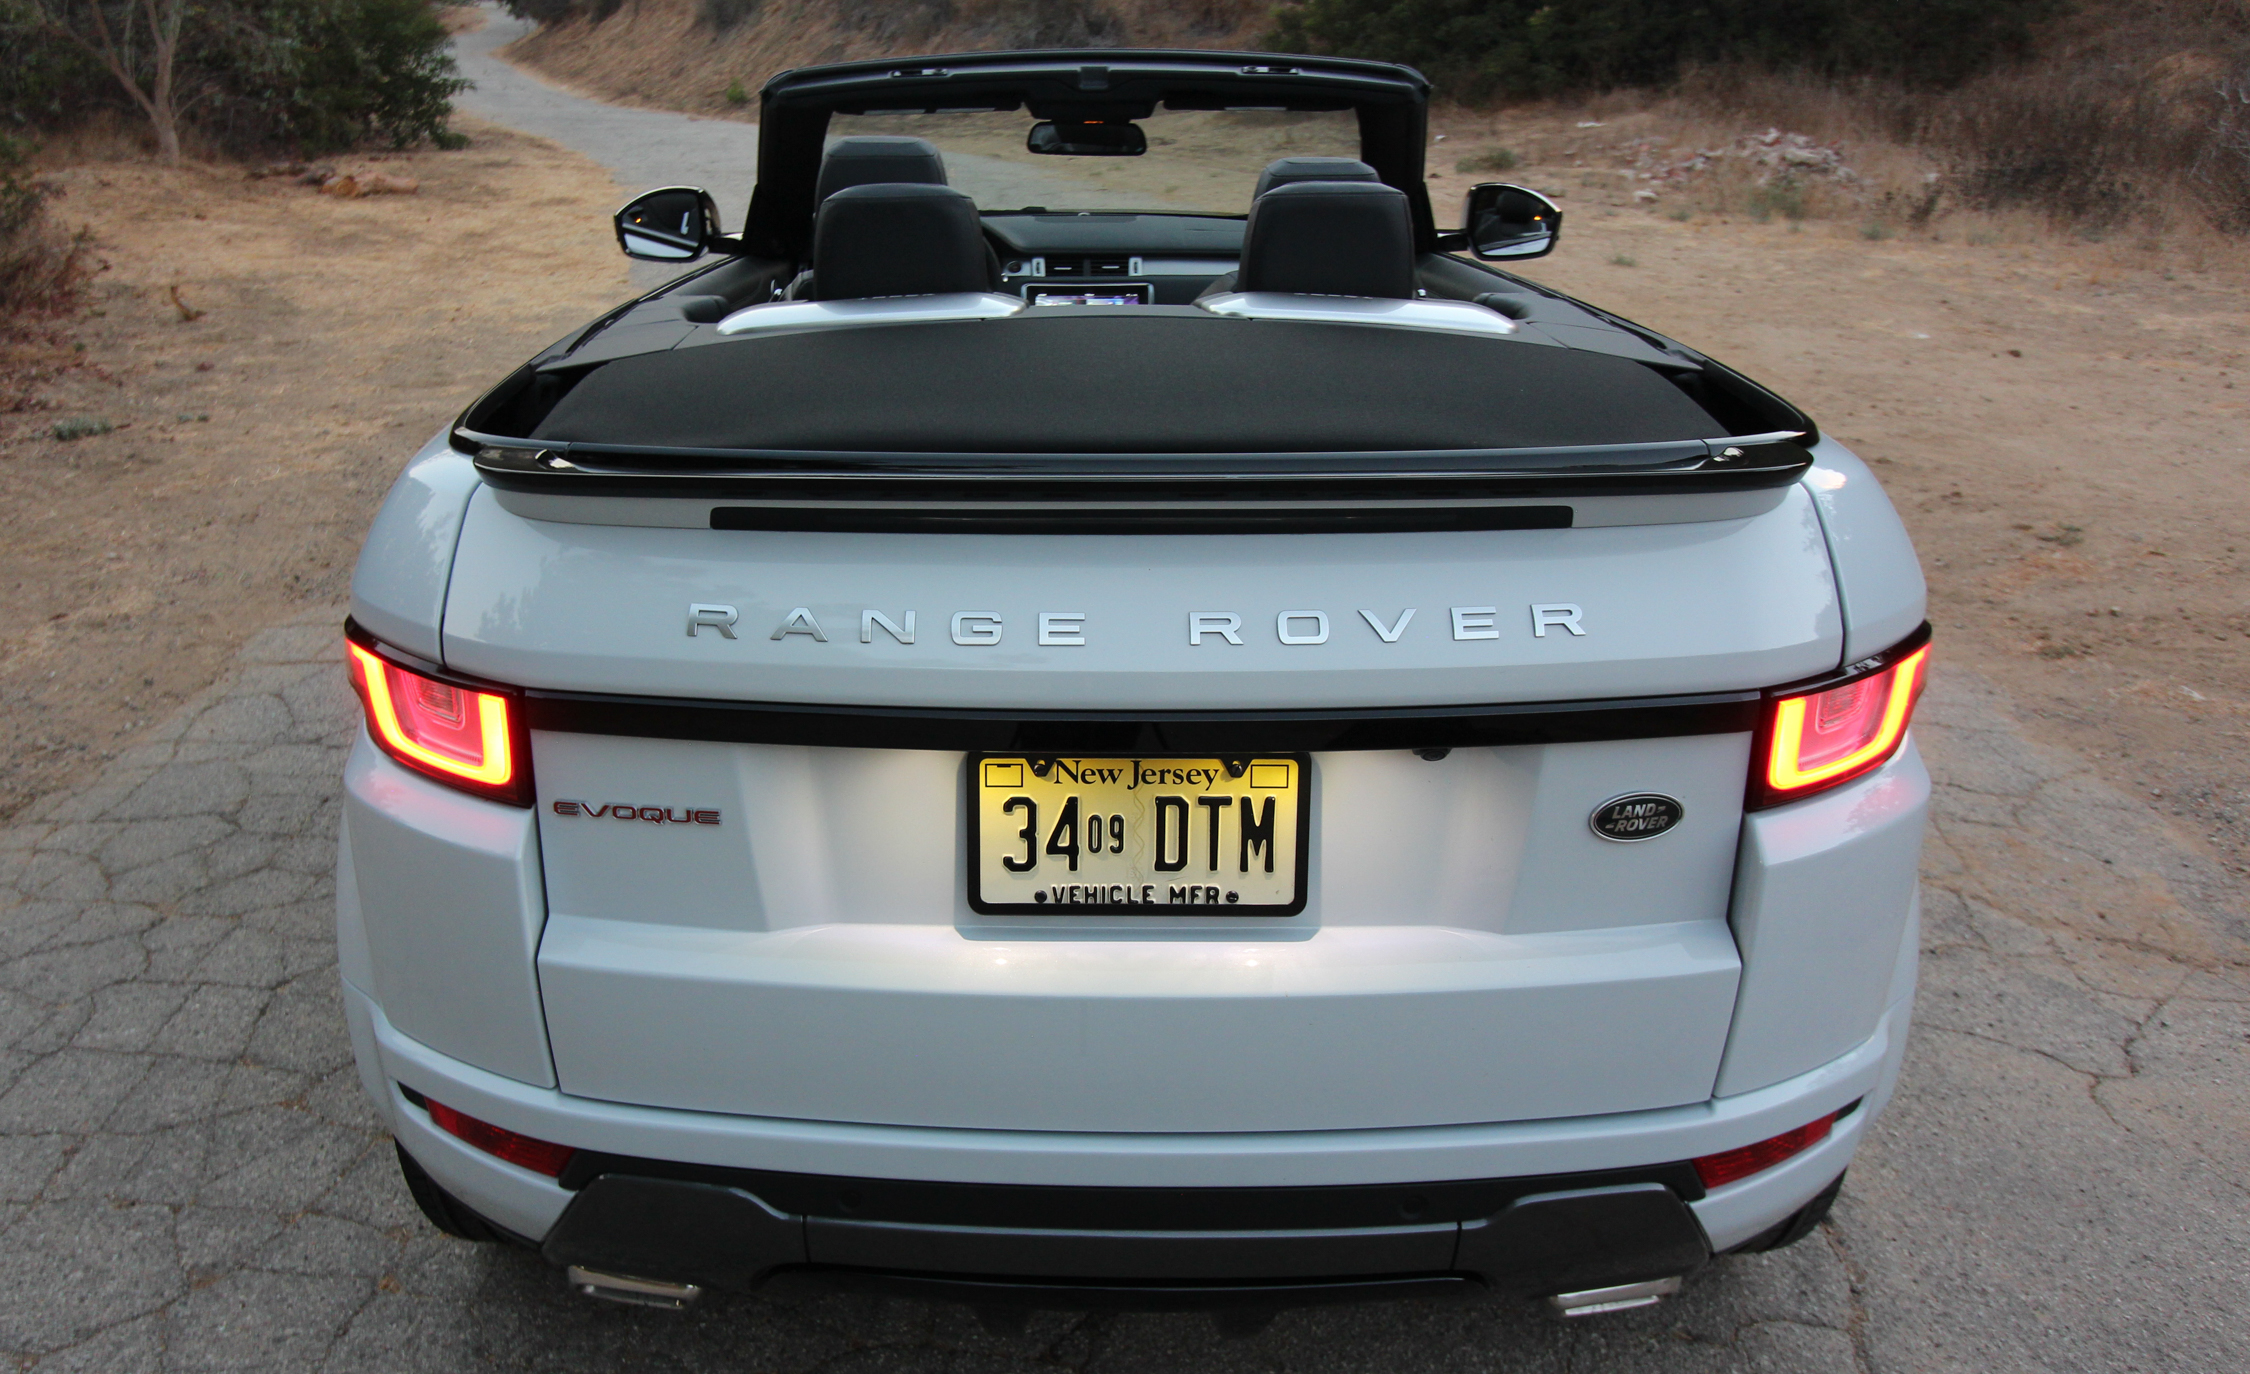 2017 Land Rover Range Rover Evoque Convertible Exterior Open Roof Rear End (Photo 7 of 14)